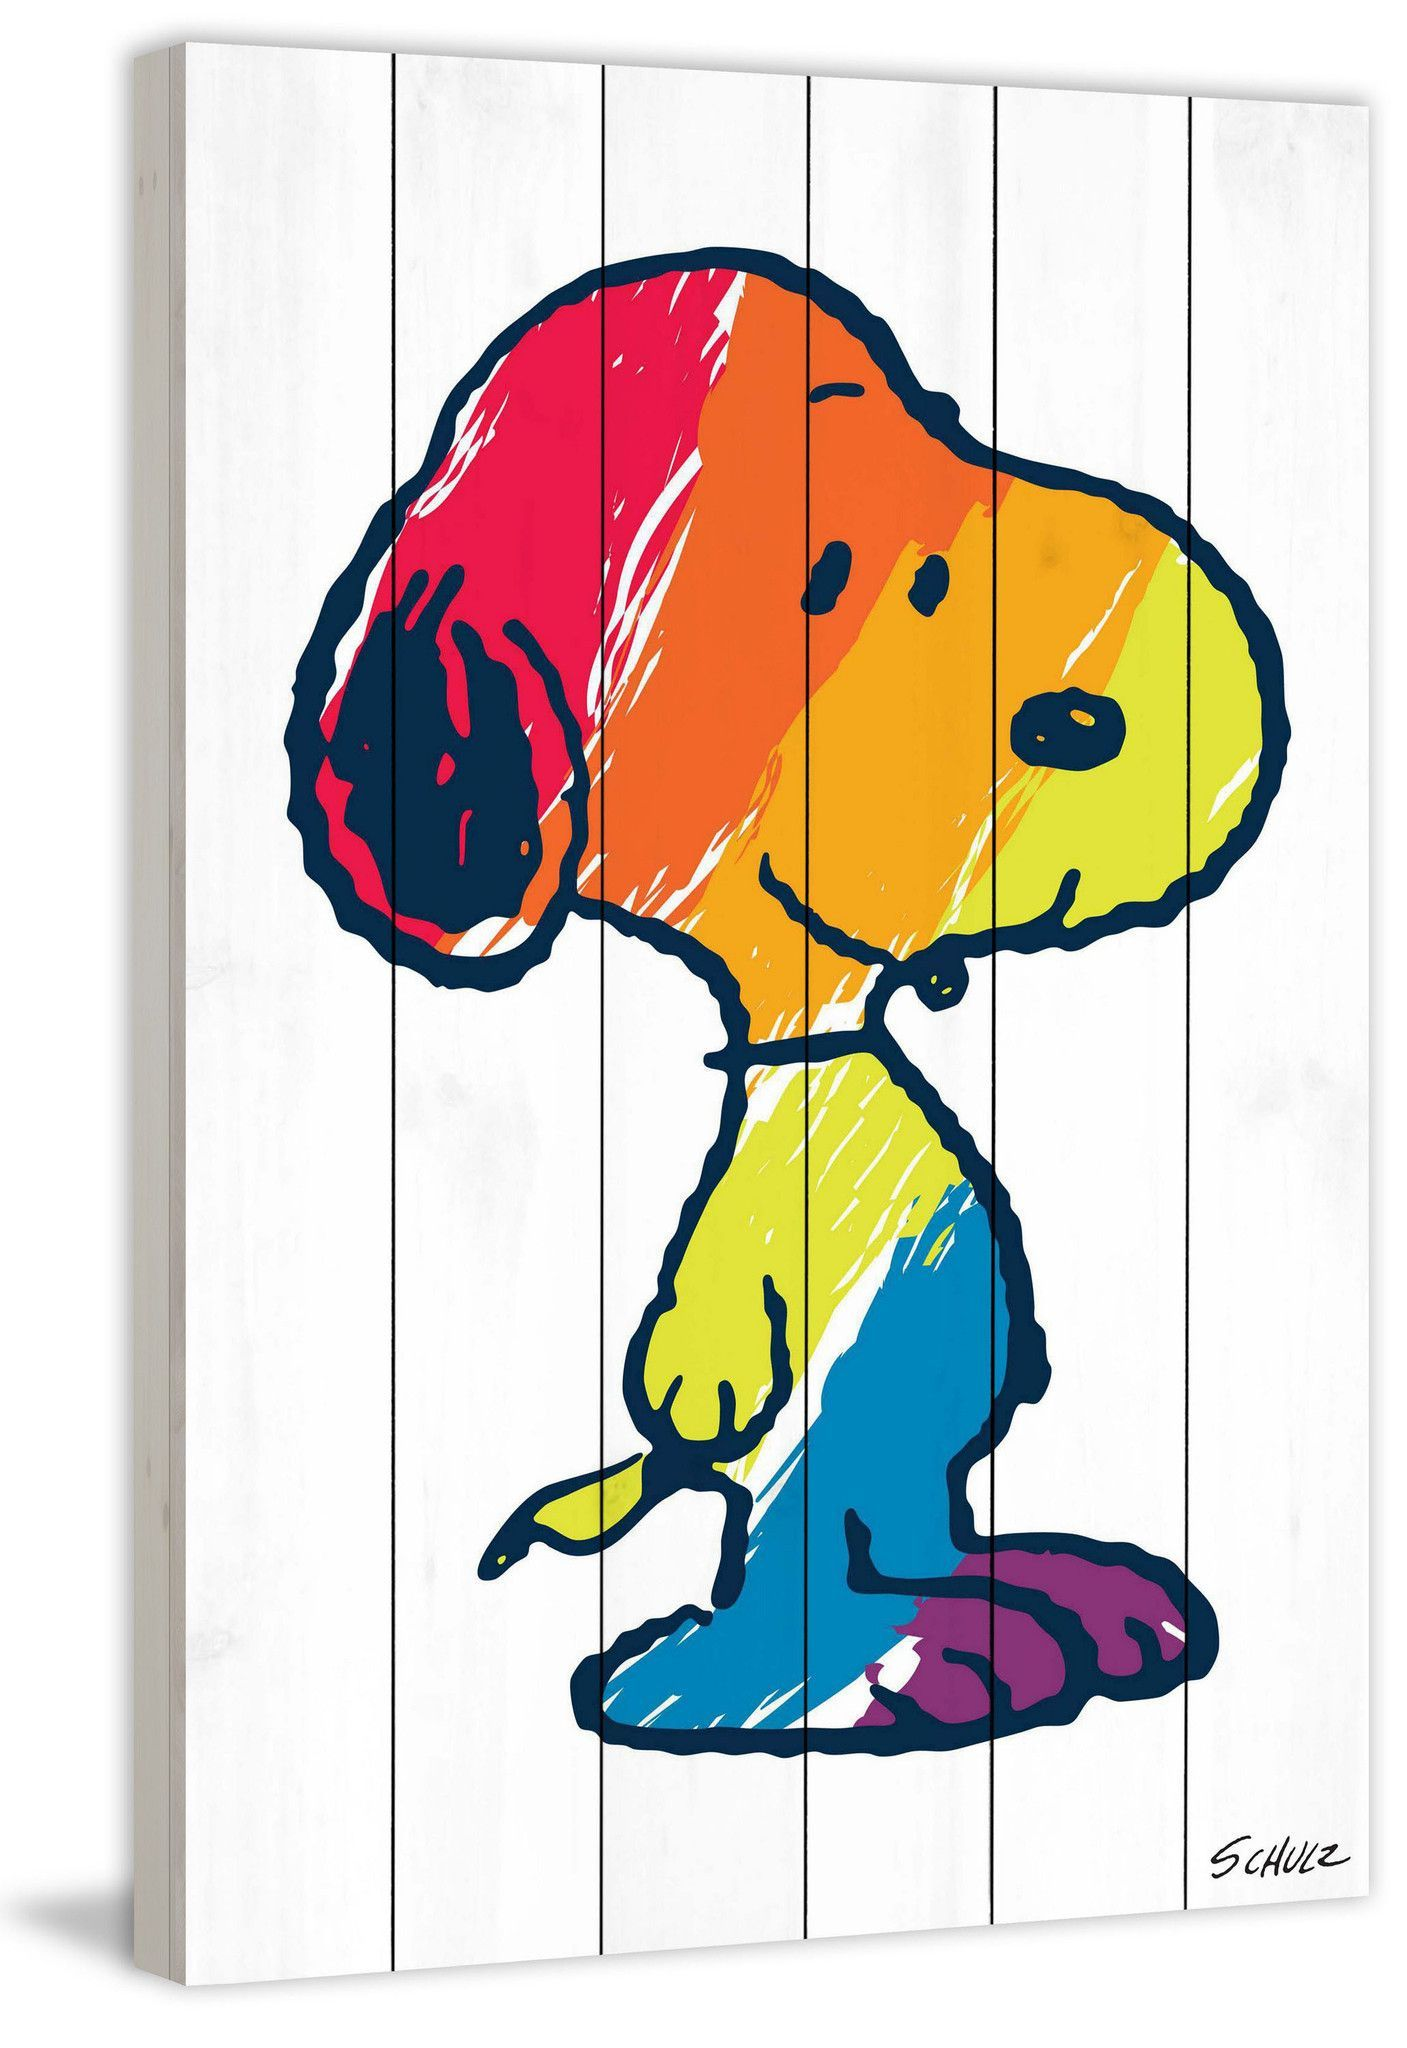 Description Peanuts icon, Snoopy, in all the colors of